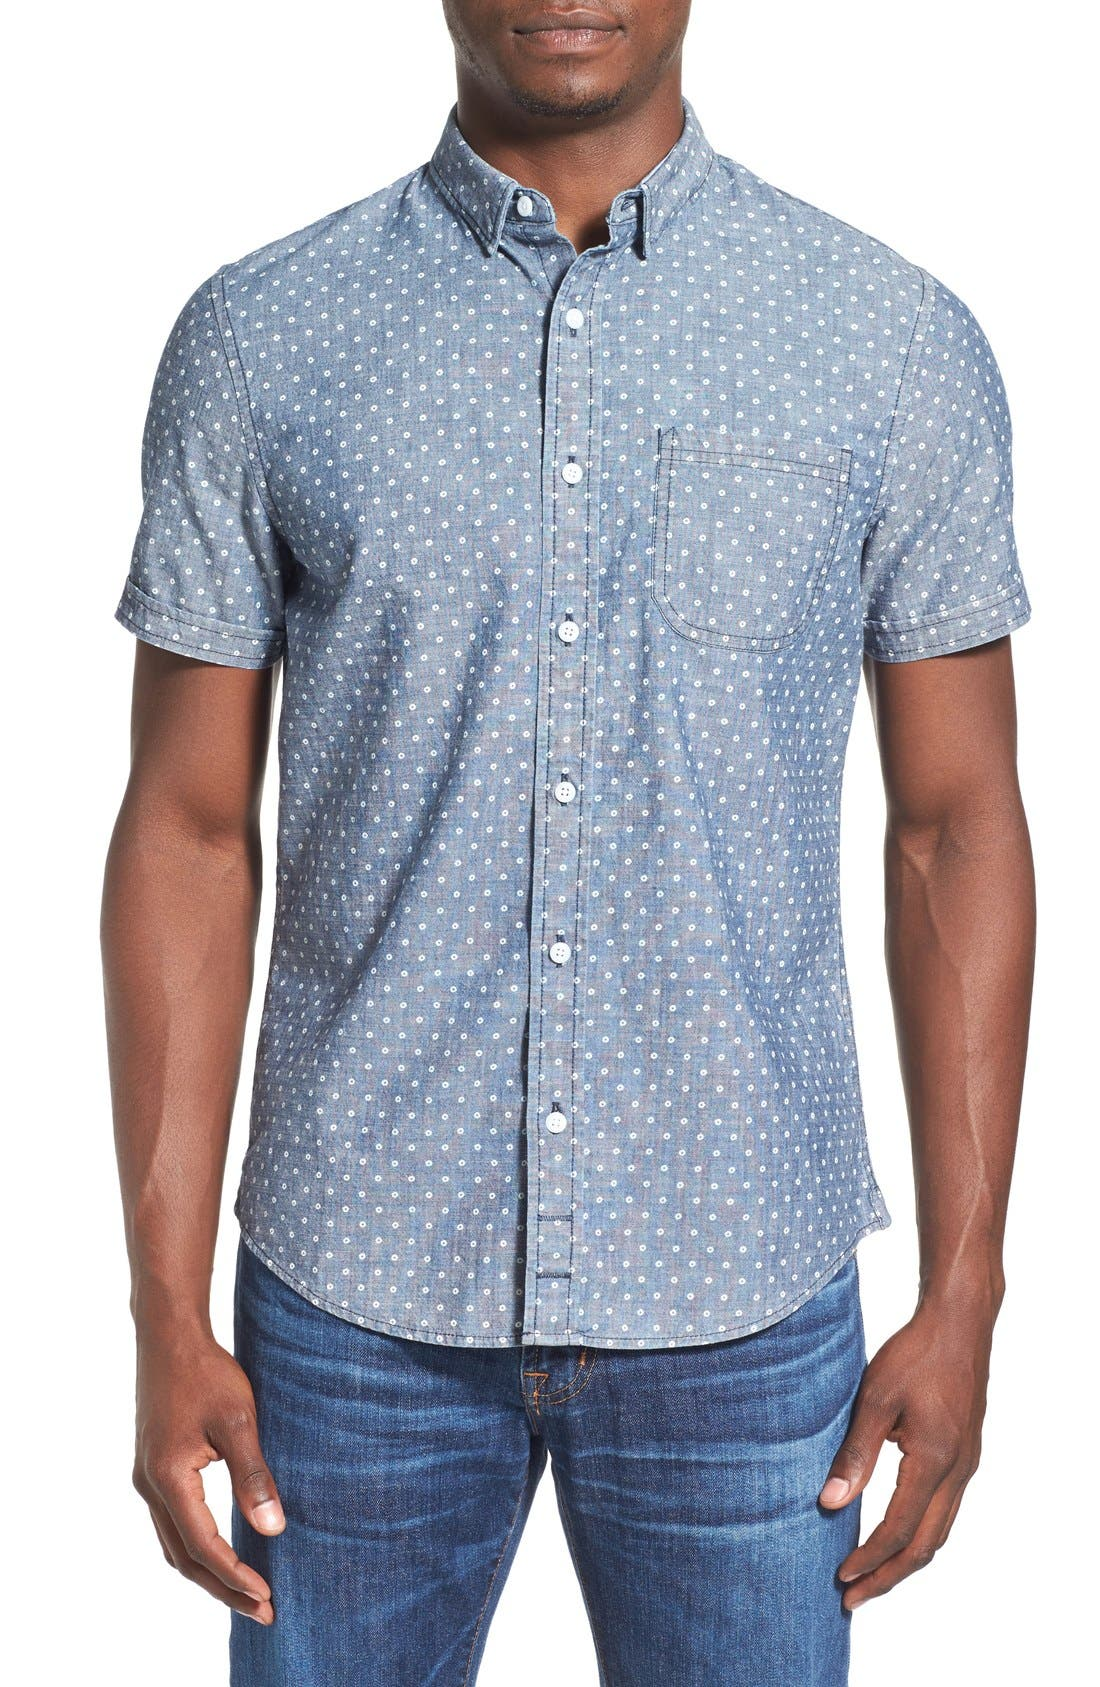 Alternate Image 1 Selected - 1901 'Whitman' Trim Fit Short Sleeve Dot Print Chambray Shirt